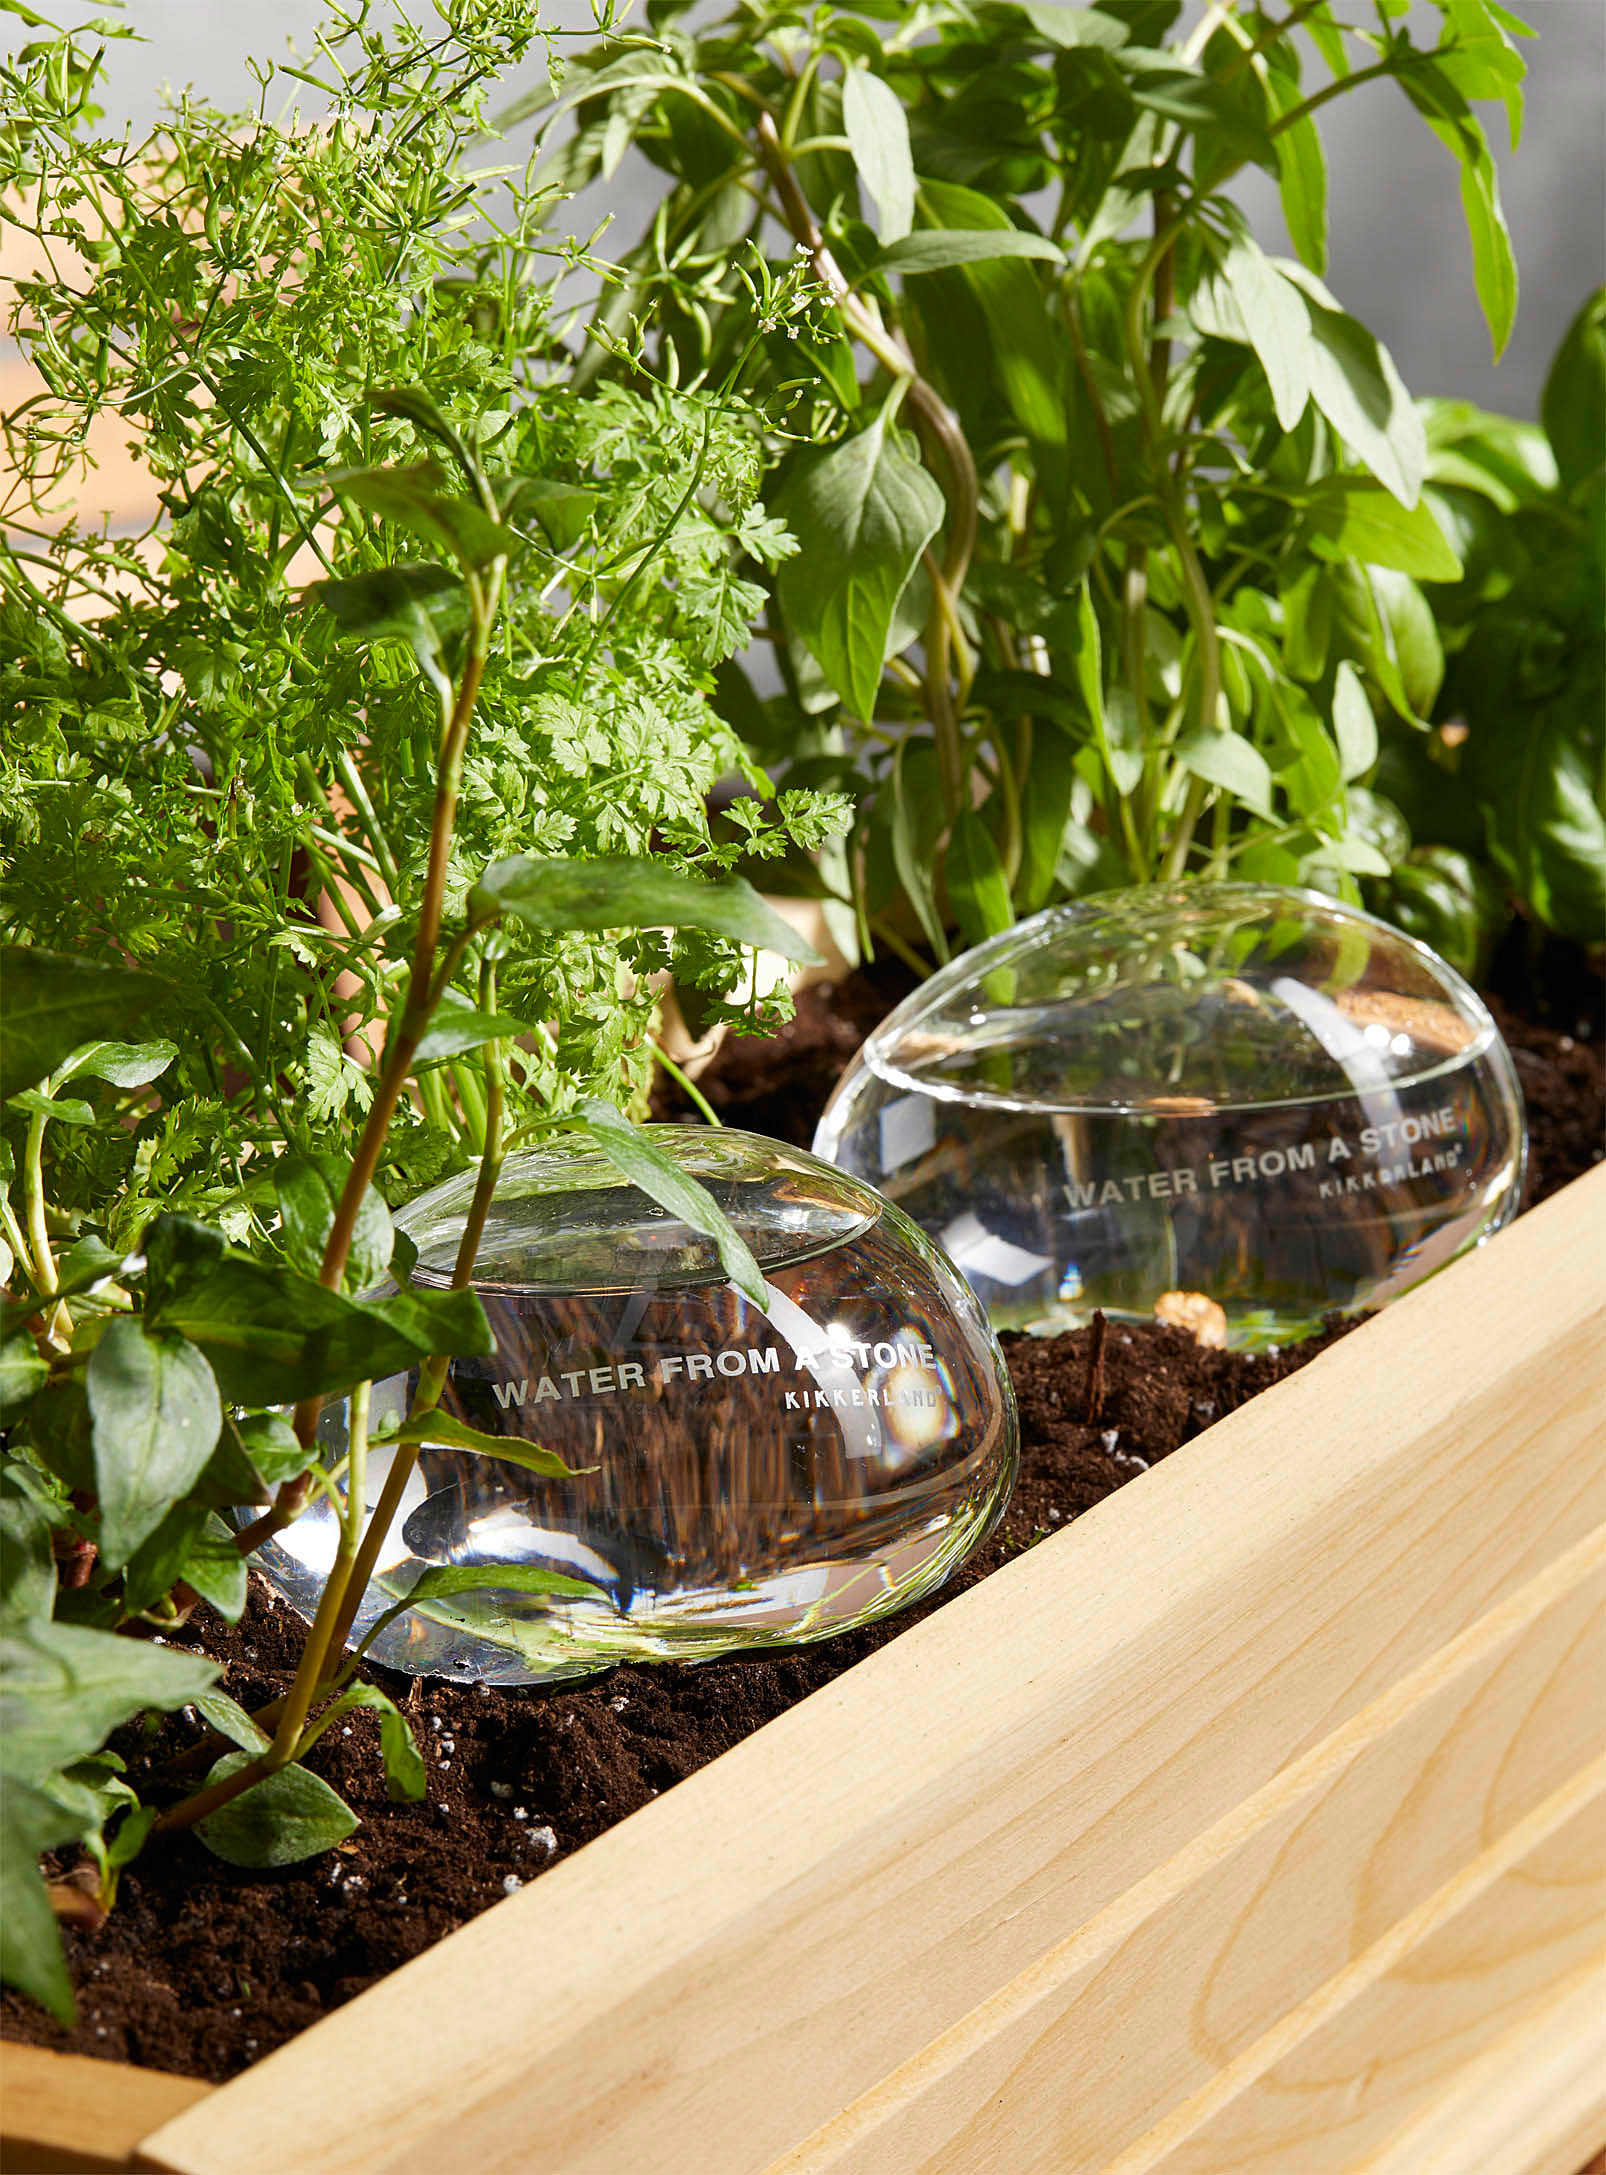 two glass globes filled with water in a plant bed